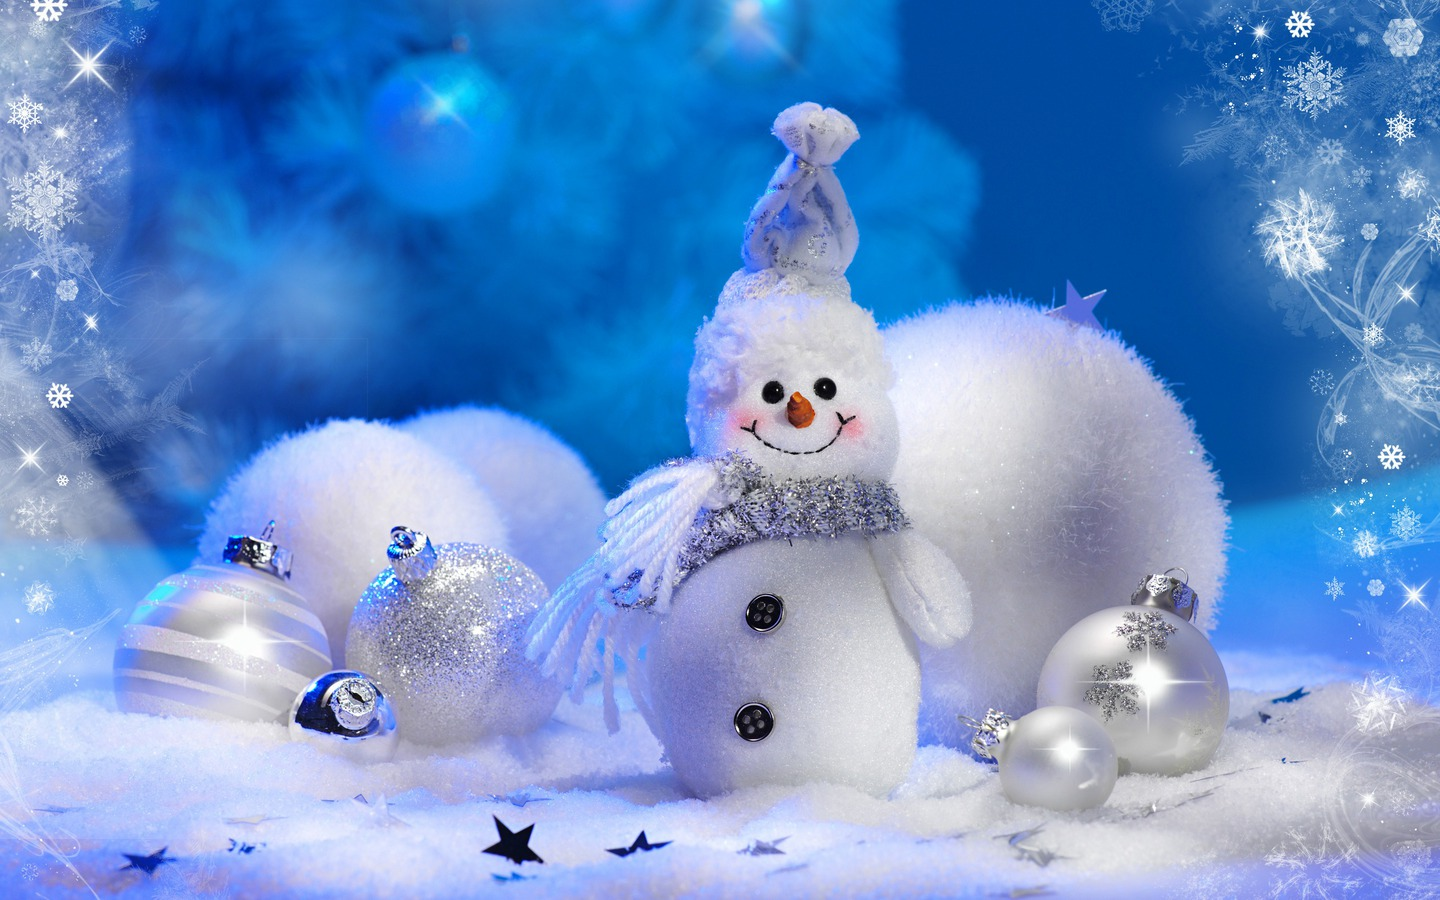 Best HD Wallpaper Blog   Christmas Desktop Wallpapers 1440x900